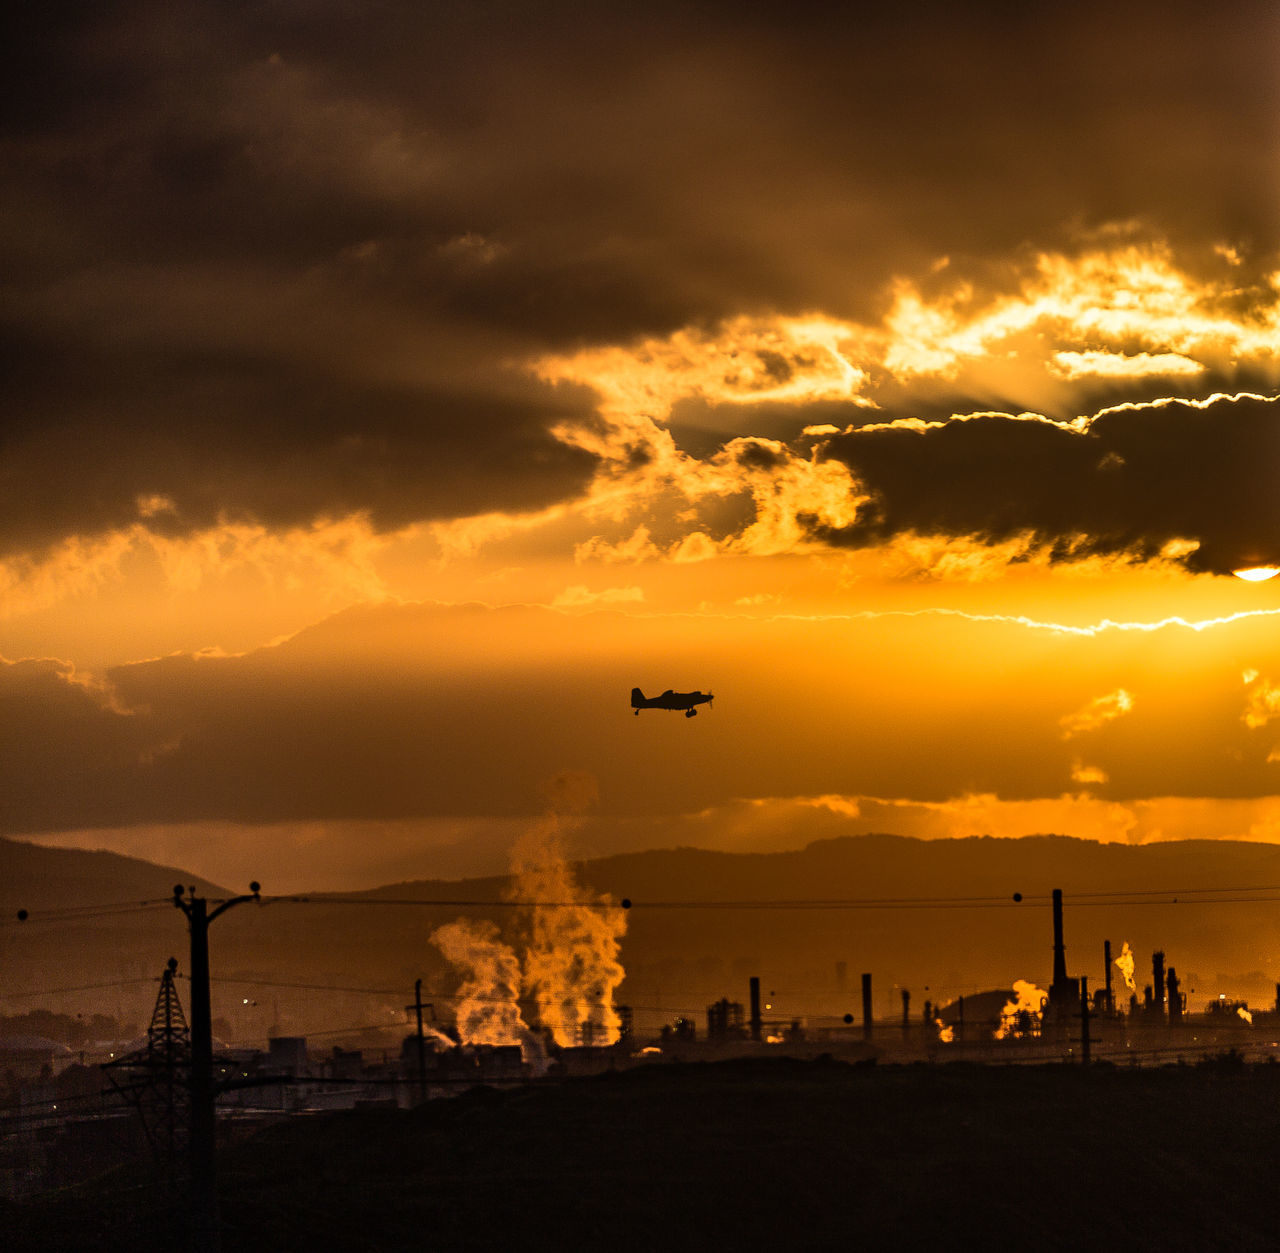 Air Tractor AT-802 Air Vehicle Aircraft Airplane AT-802 Beauty In Nature Cloud - Sky Dawn Facilities Flying Light Light And Shadow Mode Of Transport Mountain Orange Orange Color Outdoors Silhouette Sky Smoke Sunlight Transportation